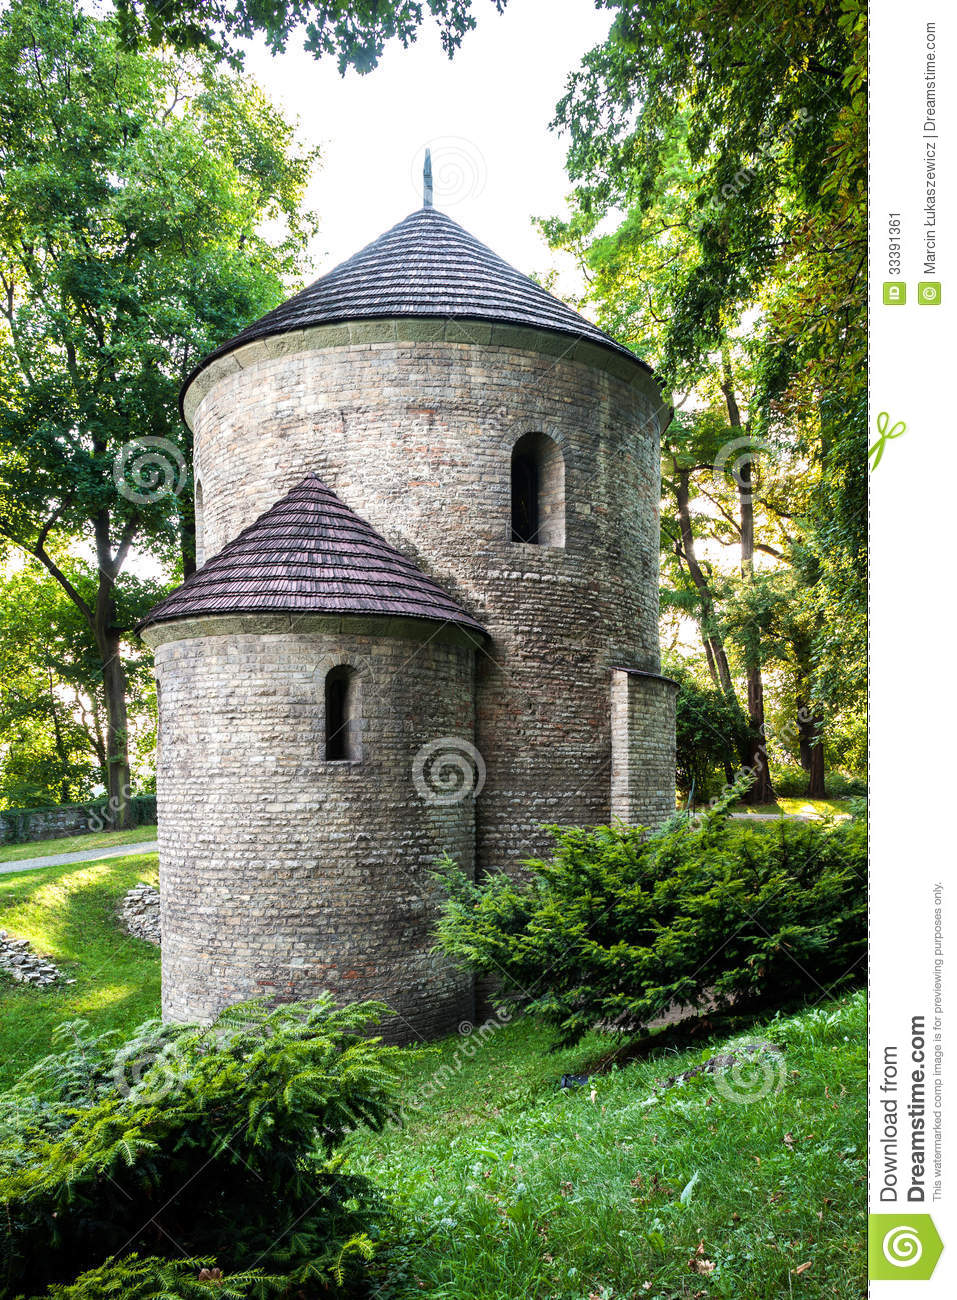 Romanesque St Nicholas Rotunda on Castle Hill in Cieszyn, Poland. One of the oldest romanesque monuments in Polish.